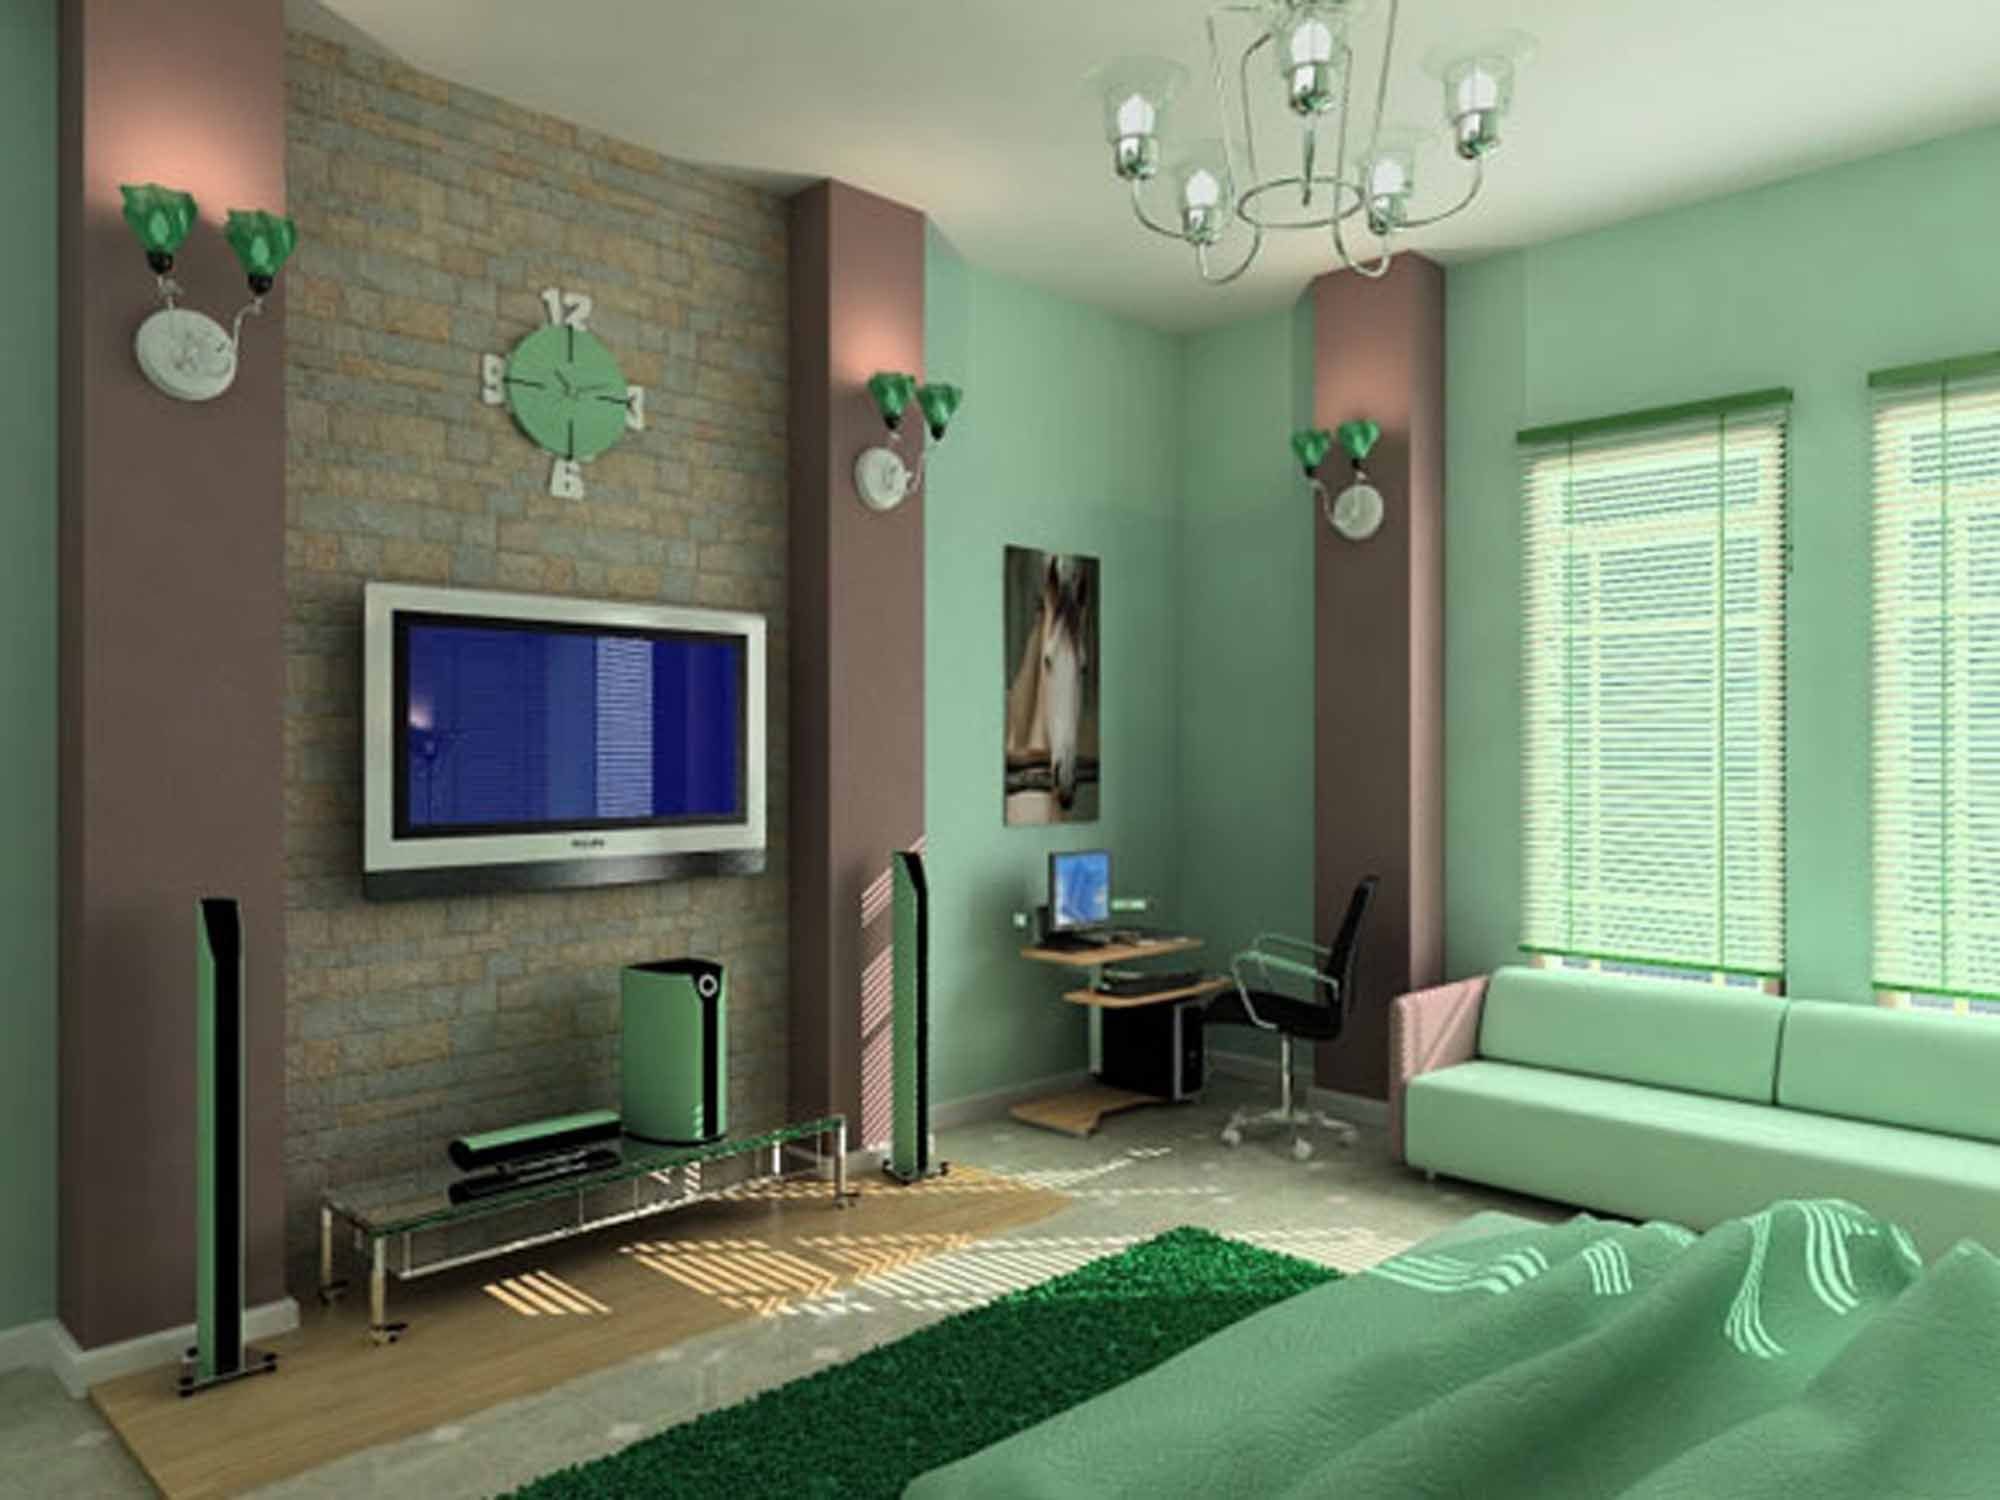 Green bedroom ideas for women - Cool As A Cucumber